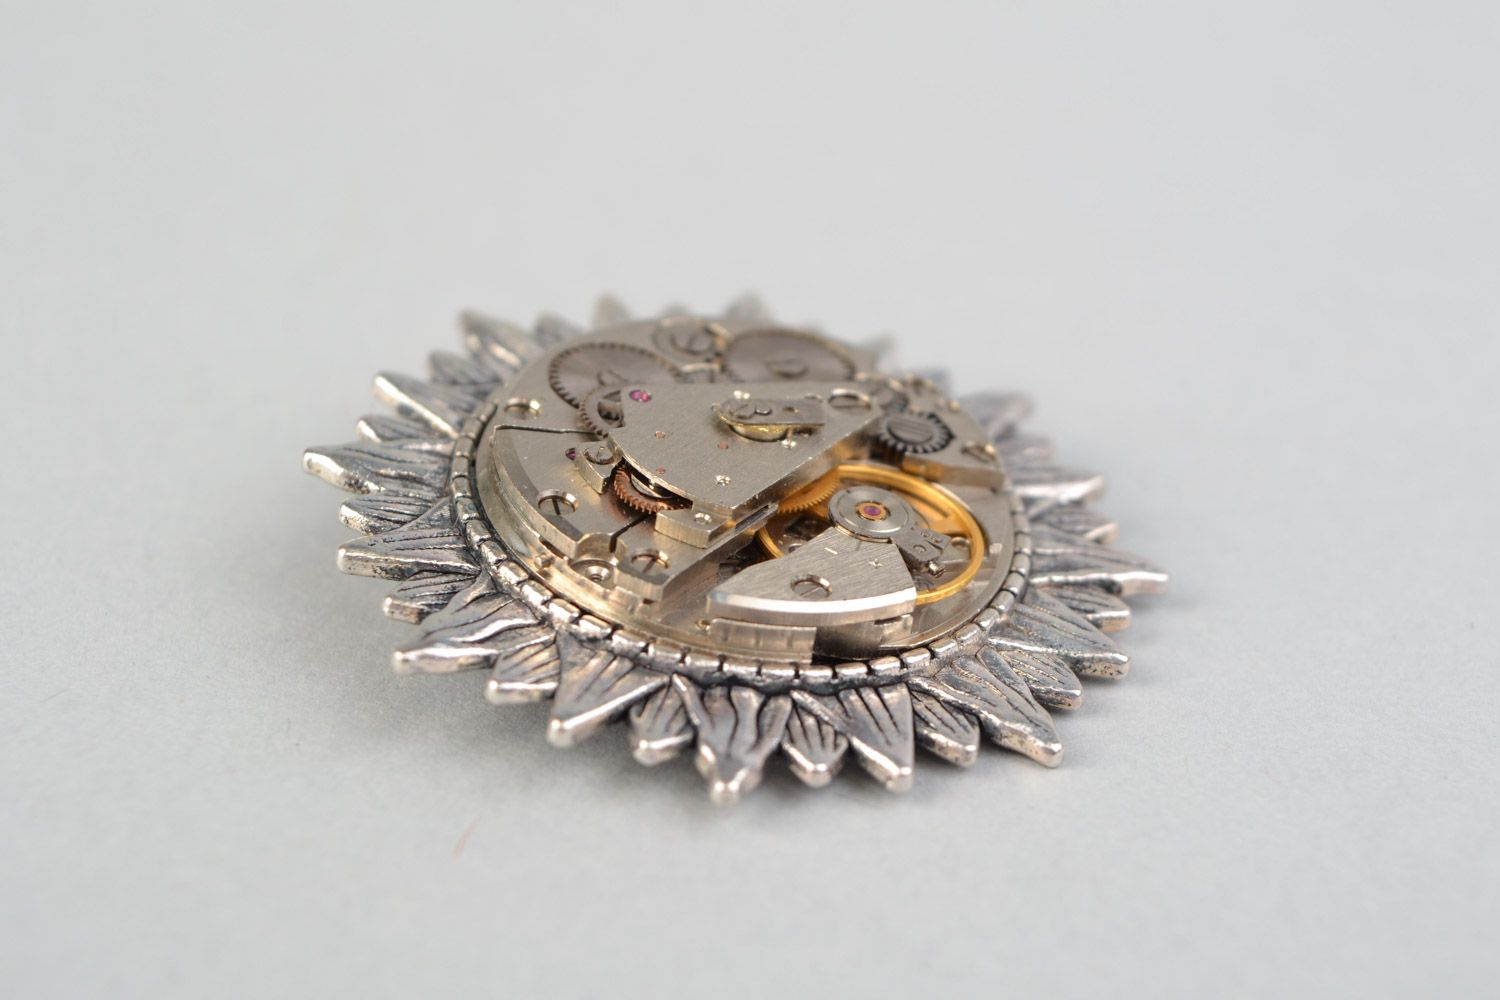 Handmade round brooch with metal basis and clock mechanism in steampunk style photo 4